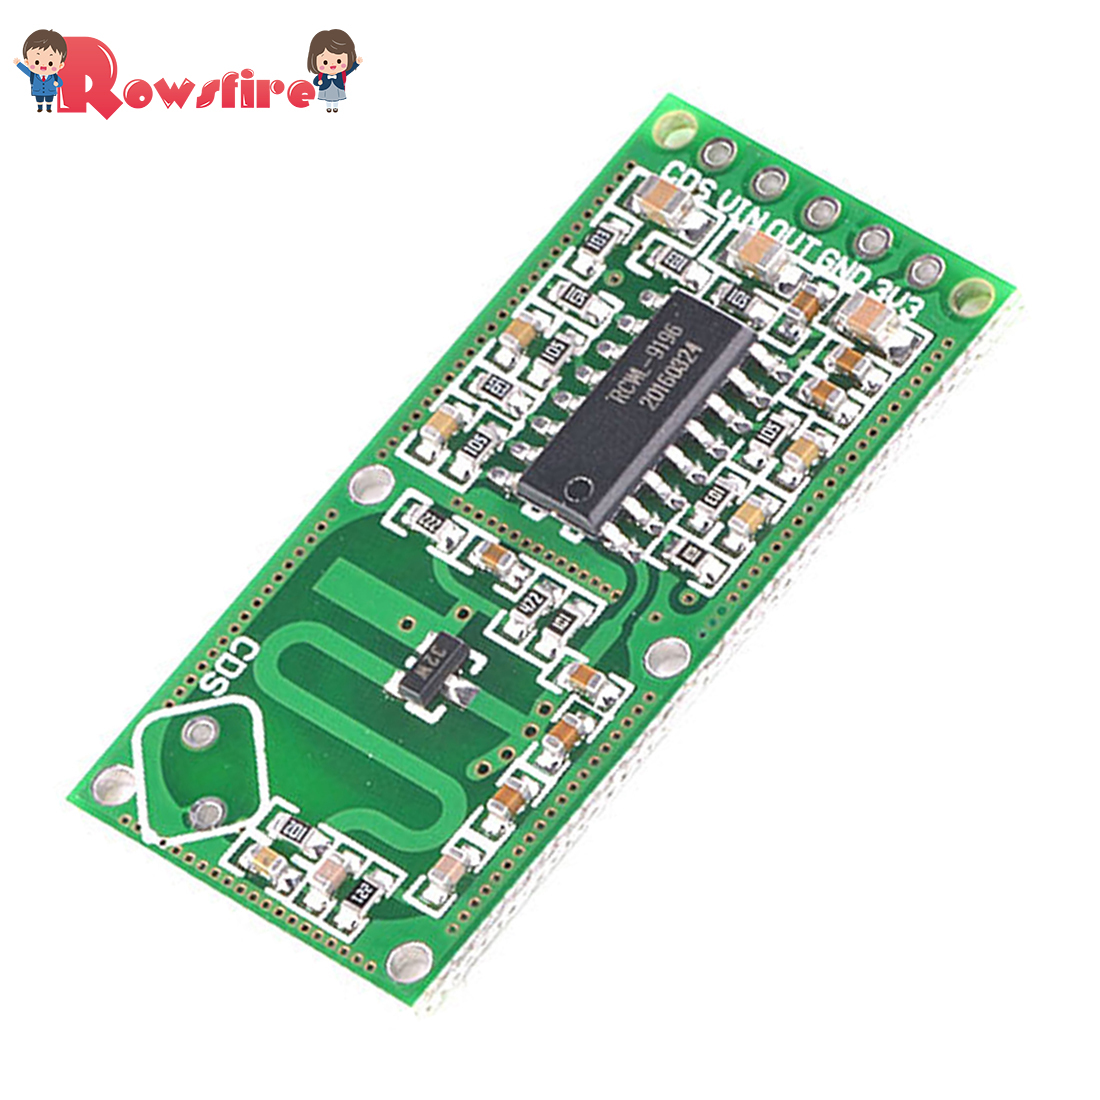 RCWL-0516 Microwave Radar Induction Switch Module Human Induction Sensor Module(BUY 5 GET 1 FREE)